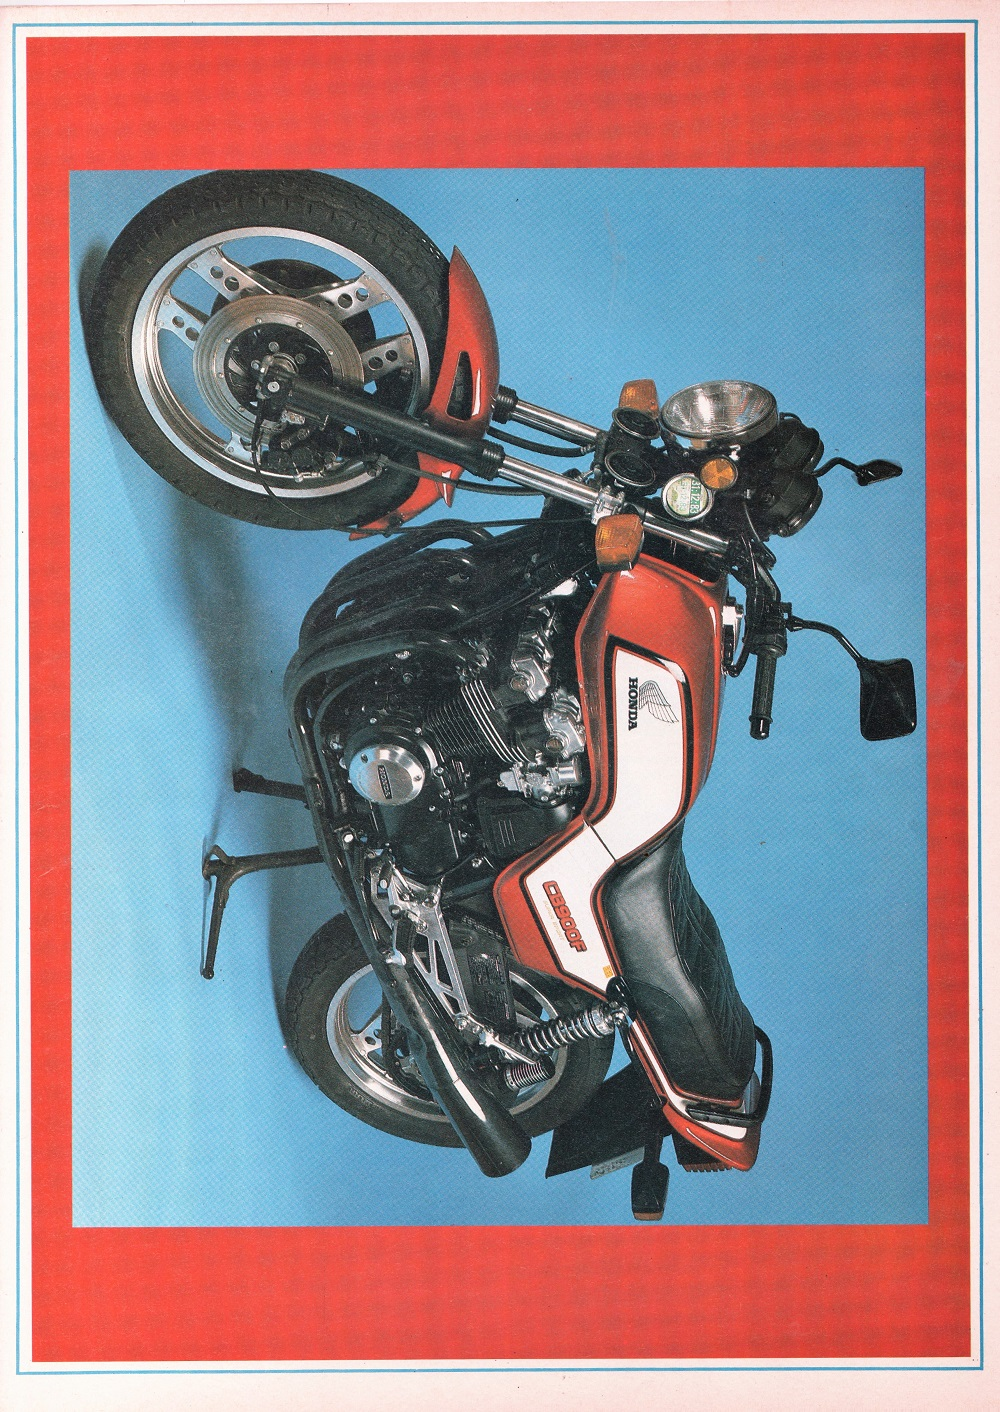 1983 Honda CB900F-D road test.2.jpg